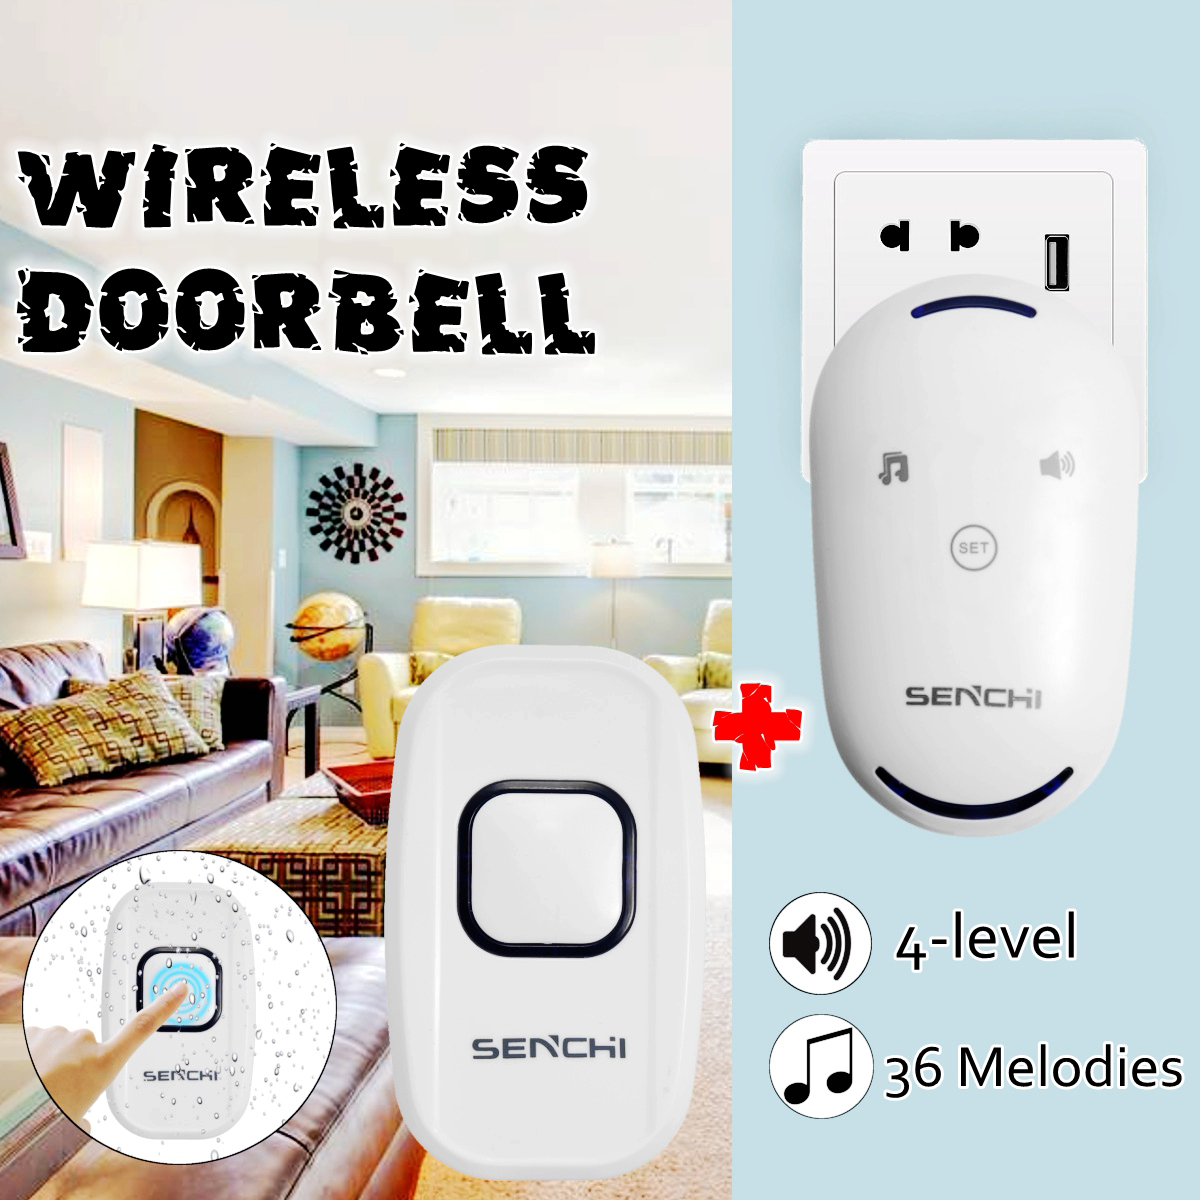 36 Chimes 4 volume levels Doorbell Wall Plug-in Wireless Door Bell Cordless 300M Range Waterproof Home Transmitter+Receiver high quality ip44 waterproof wireless doorbell 300m range with 36 chimes tone 4 level volume with 1 push button and 2 receiver